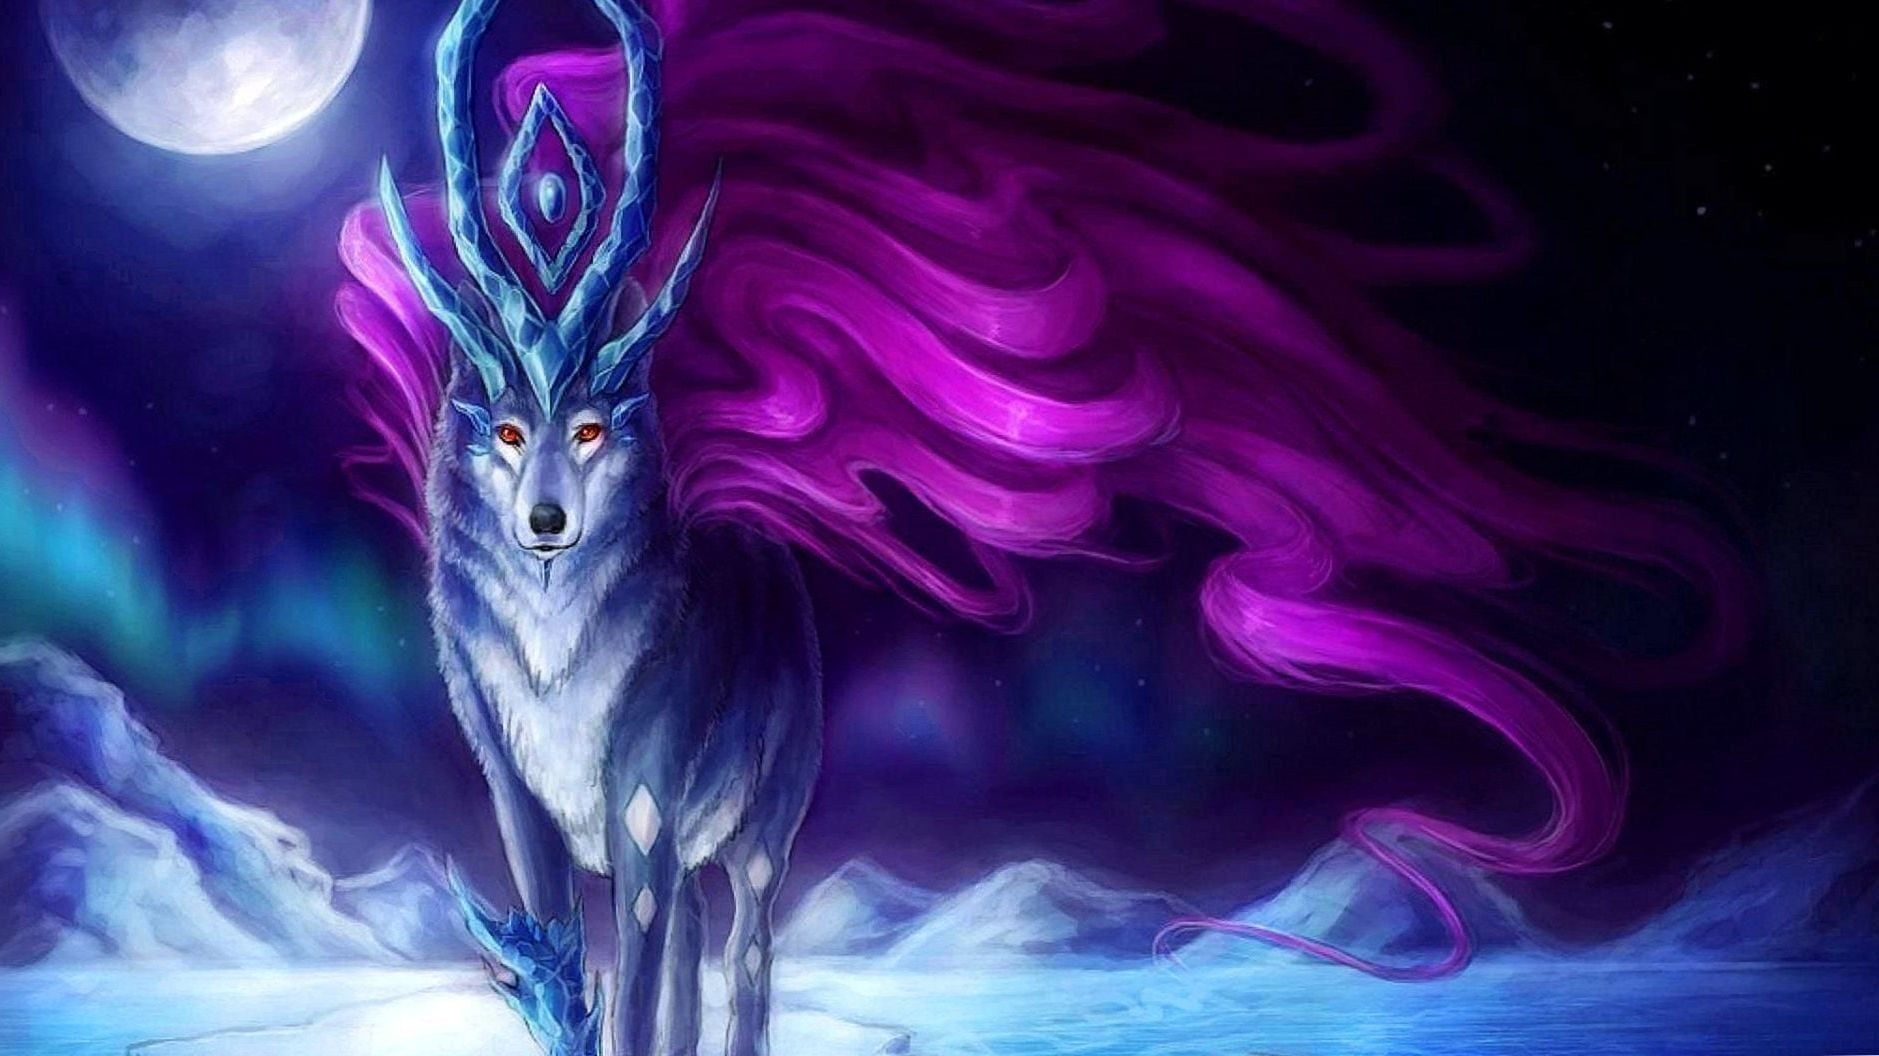 Awesome Anime Wolves Wallpapers Awesome Anime Wolves Wallpapers Wolf Wallpaper Anime Wolf Awesome Anime